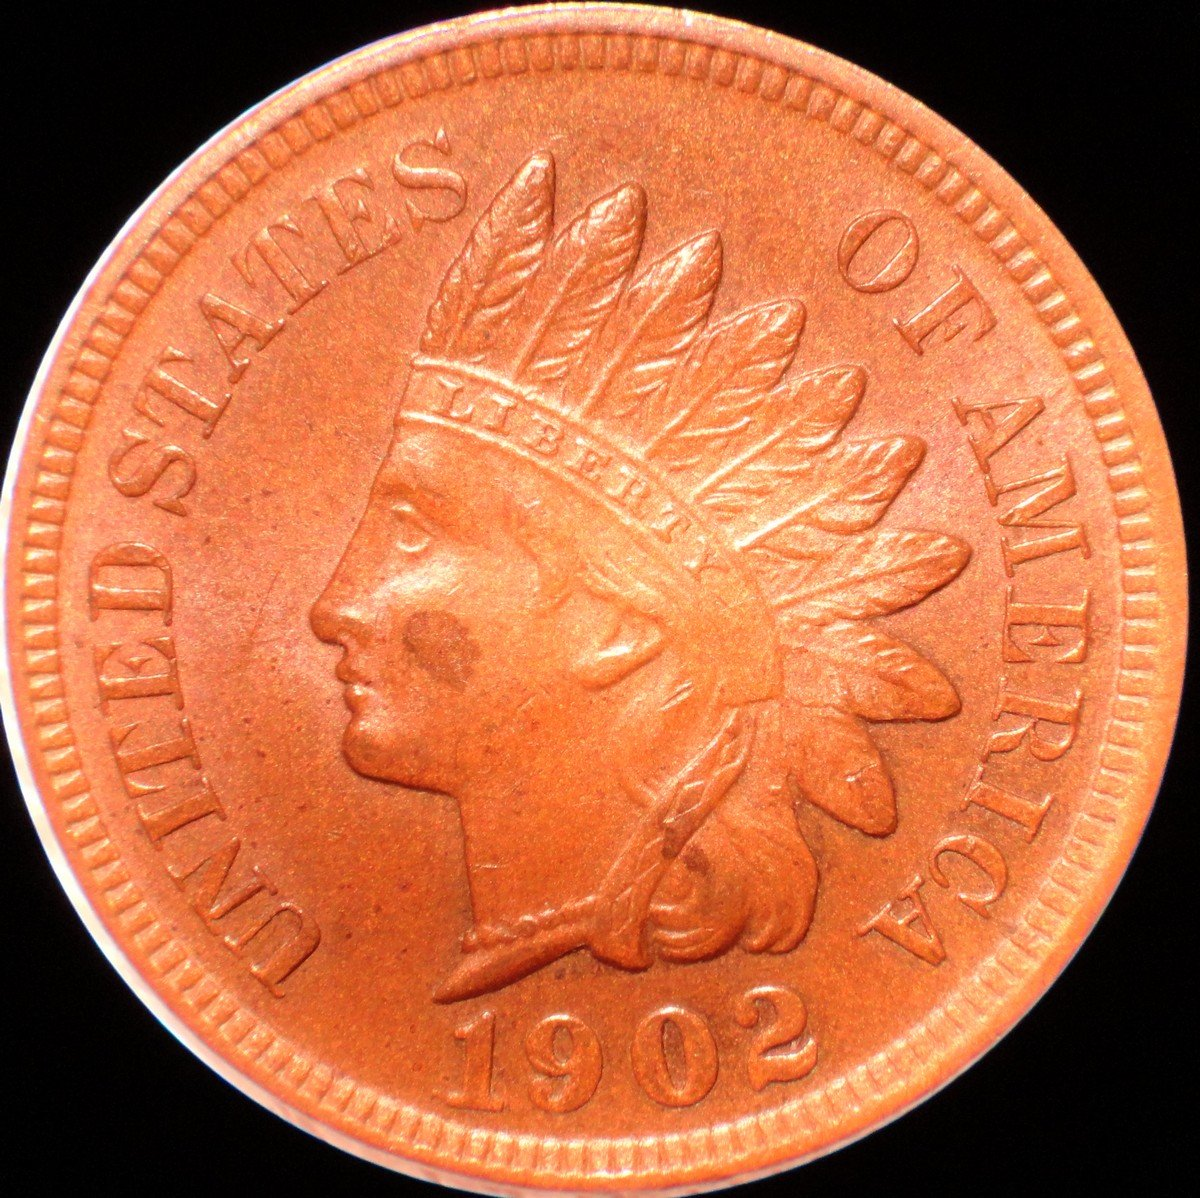 1902 RPD-013 Indian Head Penny